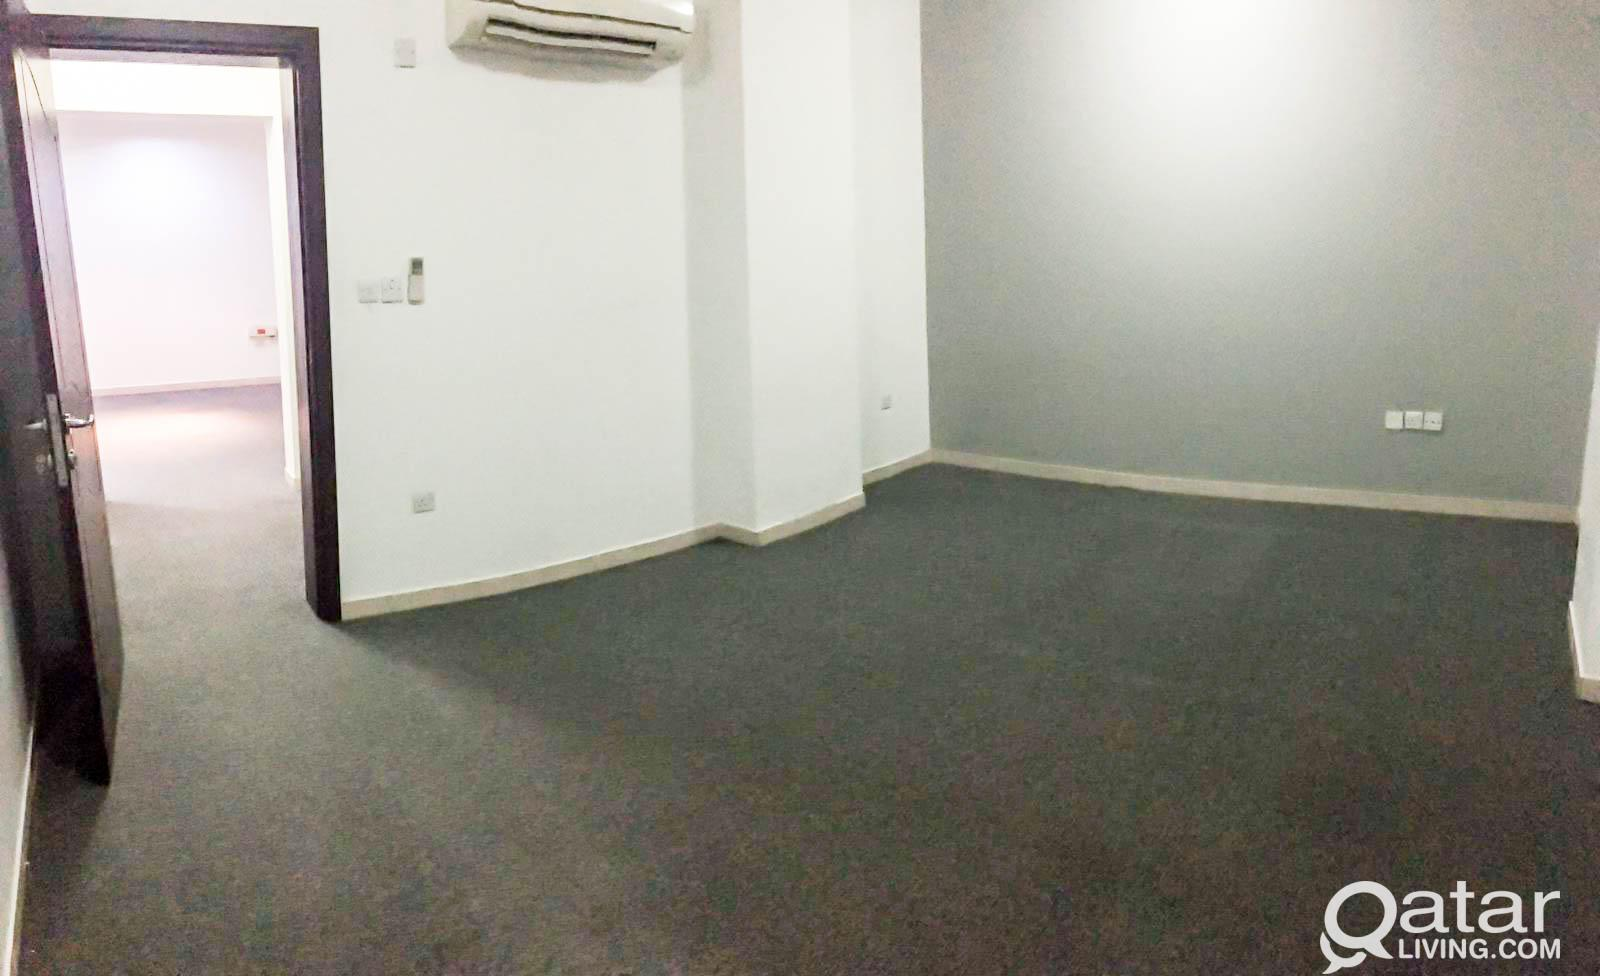 Unfurnished, 2 BHK Apartment in Musheireb near Bab